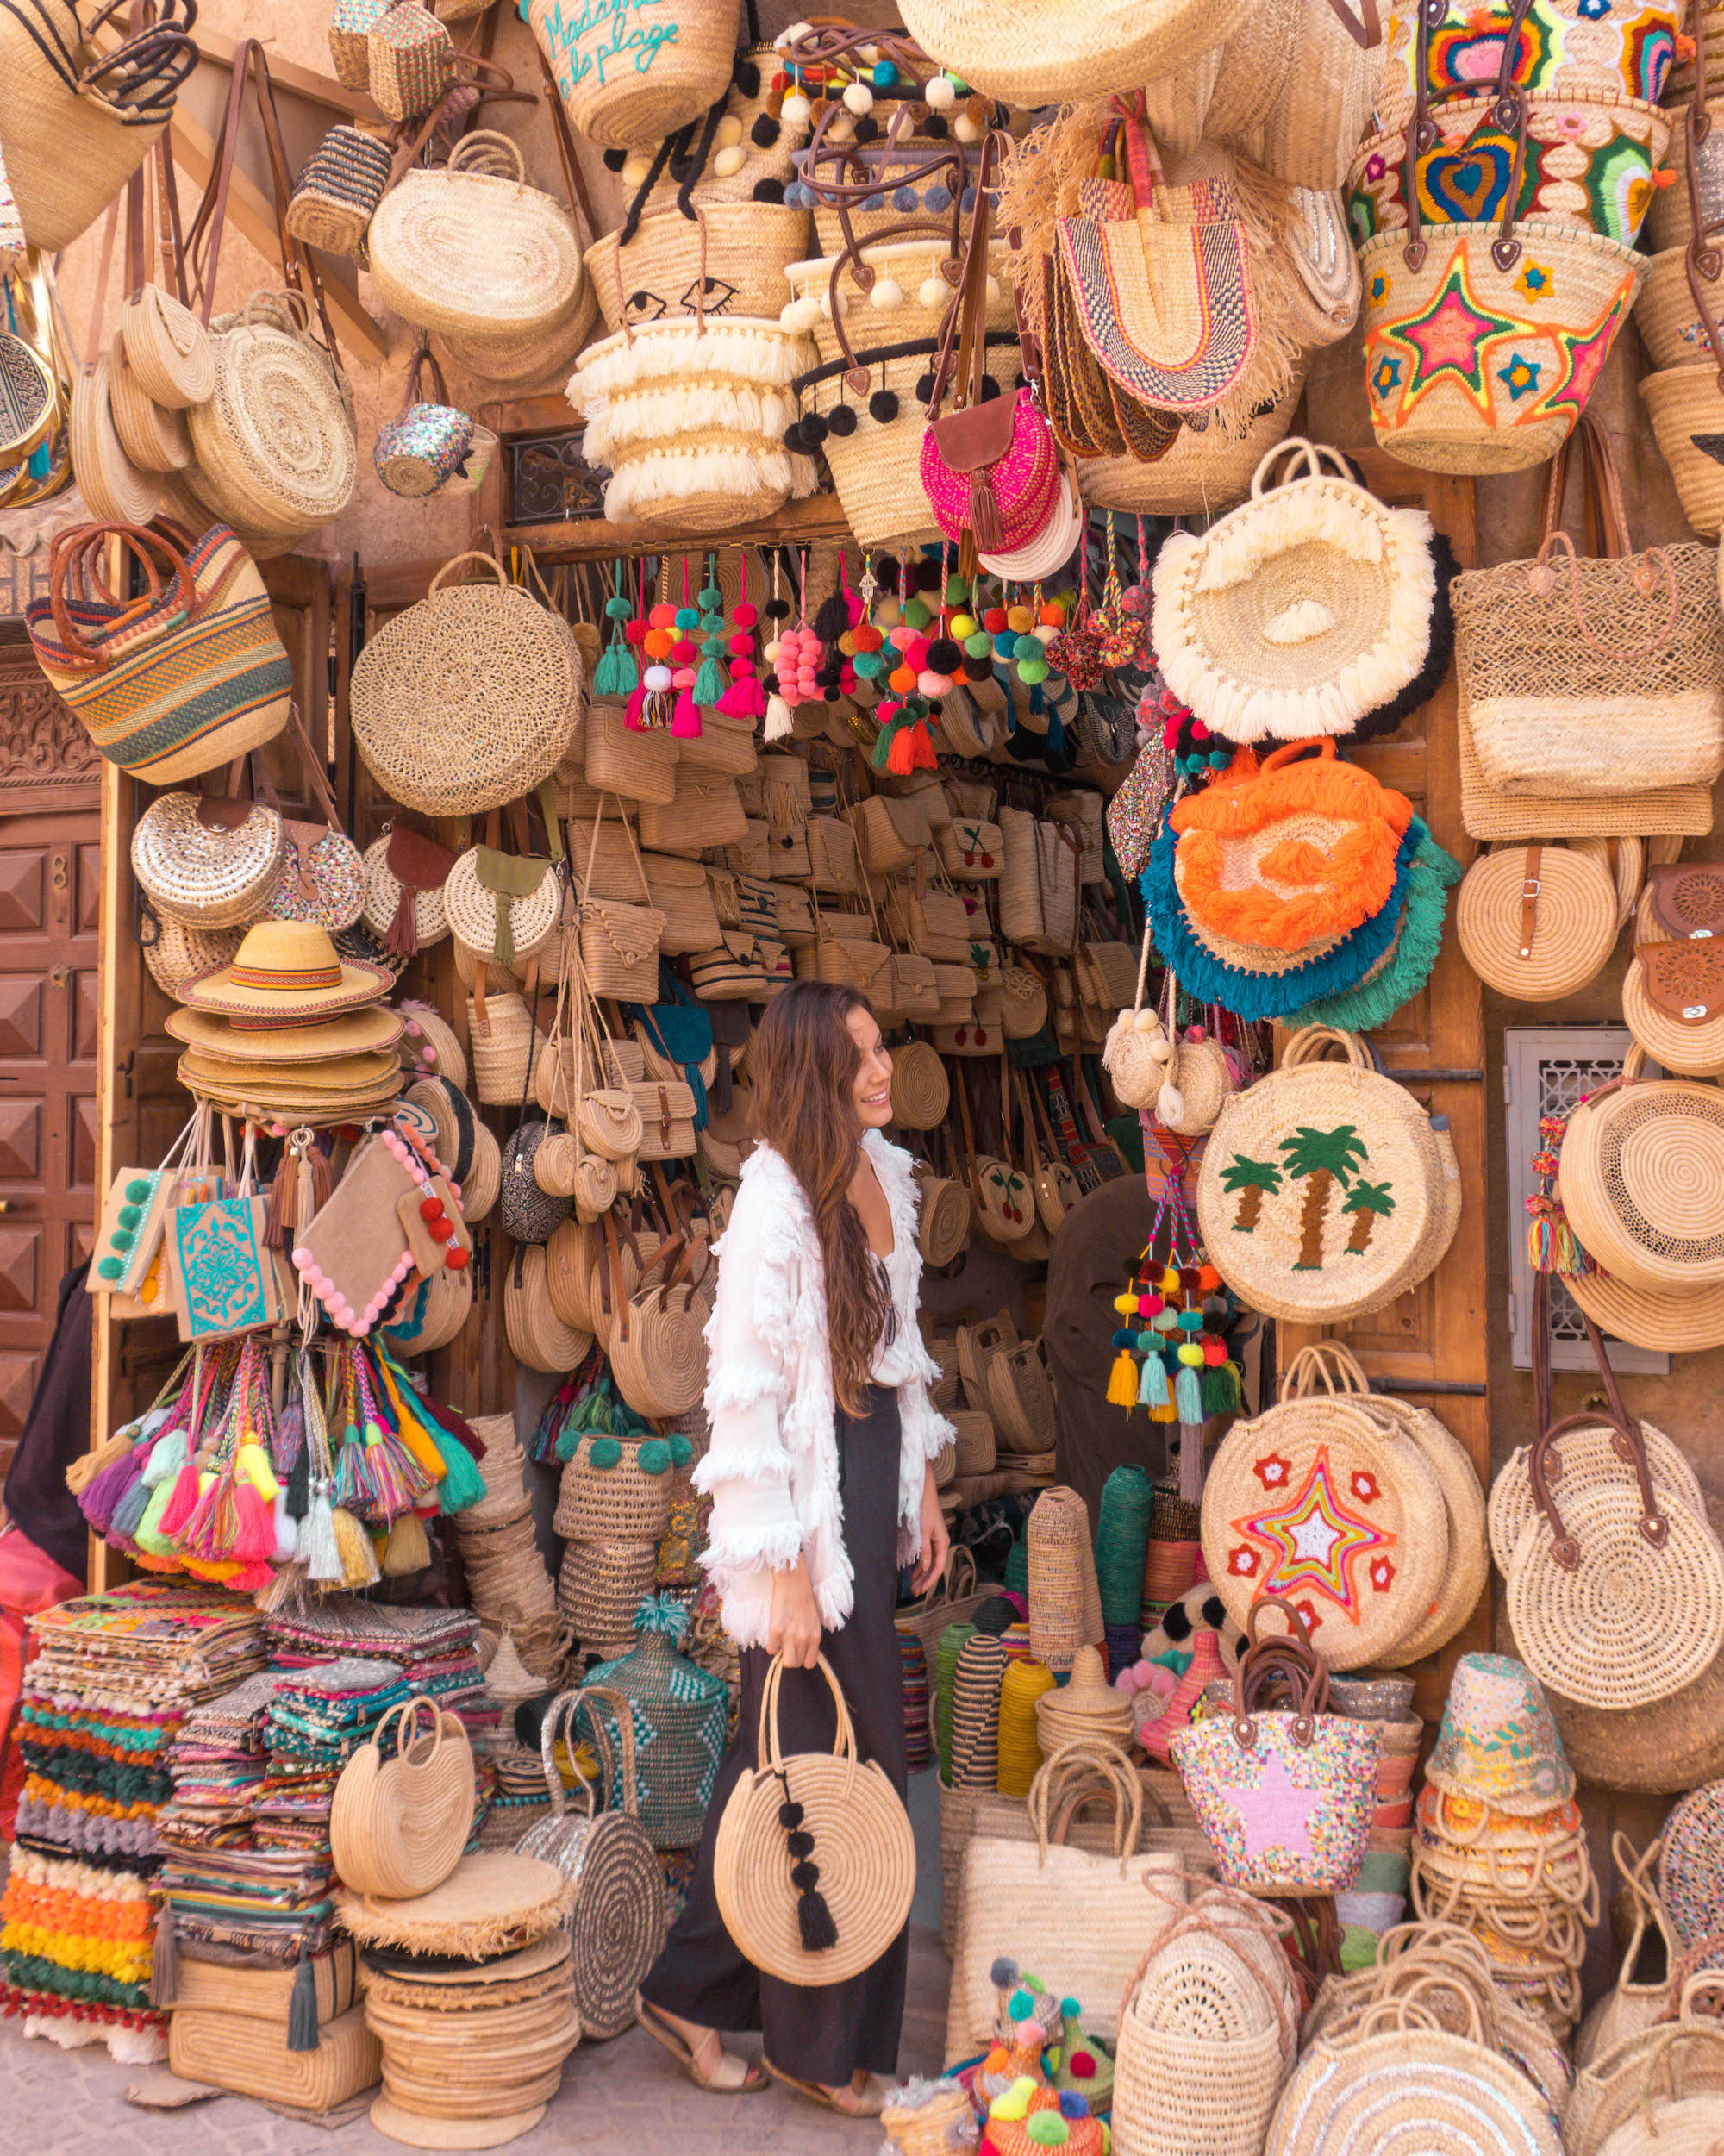 Straw bags in the Marrakech Souk. I chose the one I'm Holding here and purchased another as a gift for my sister.